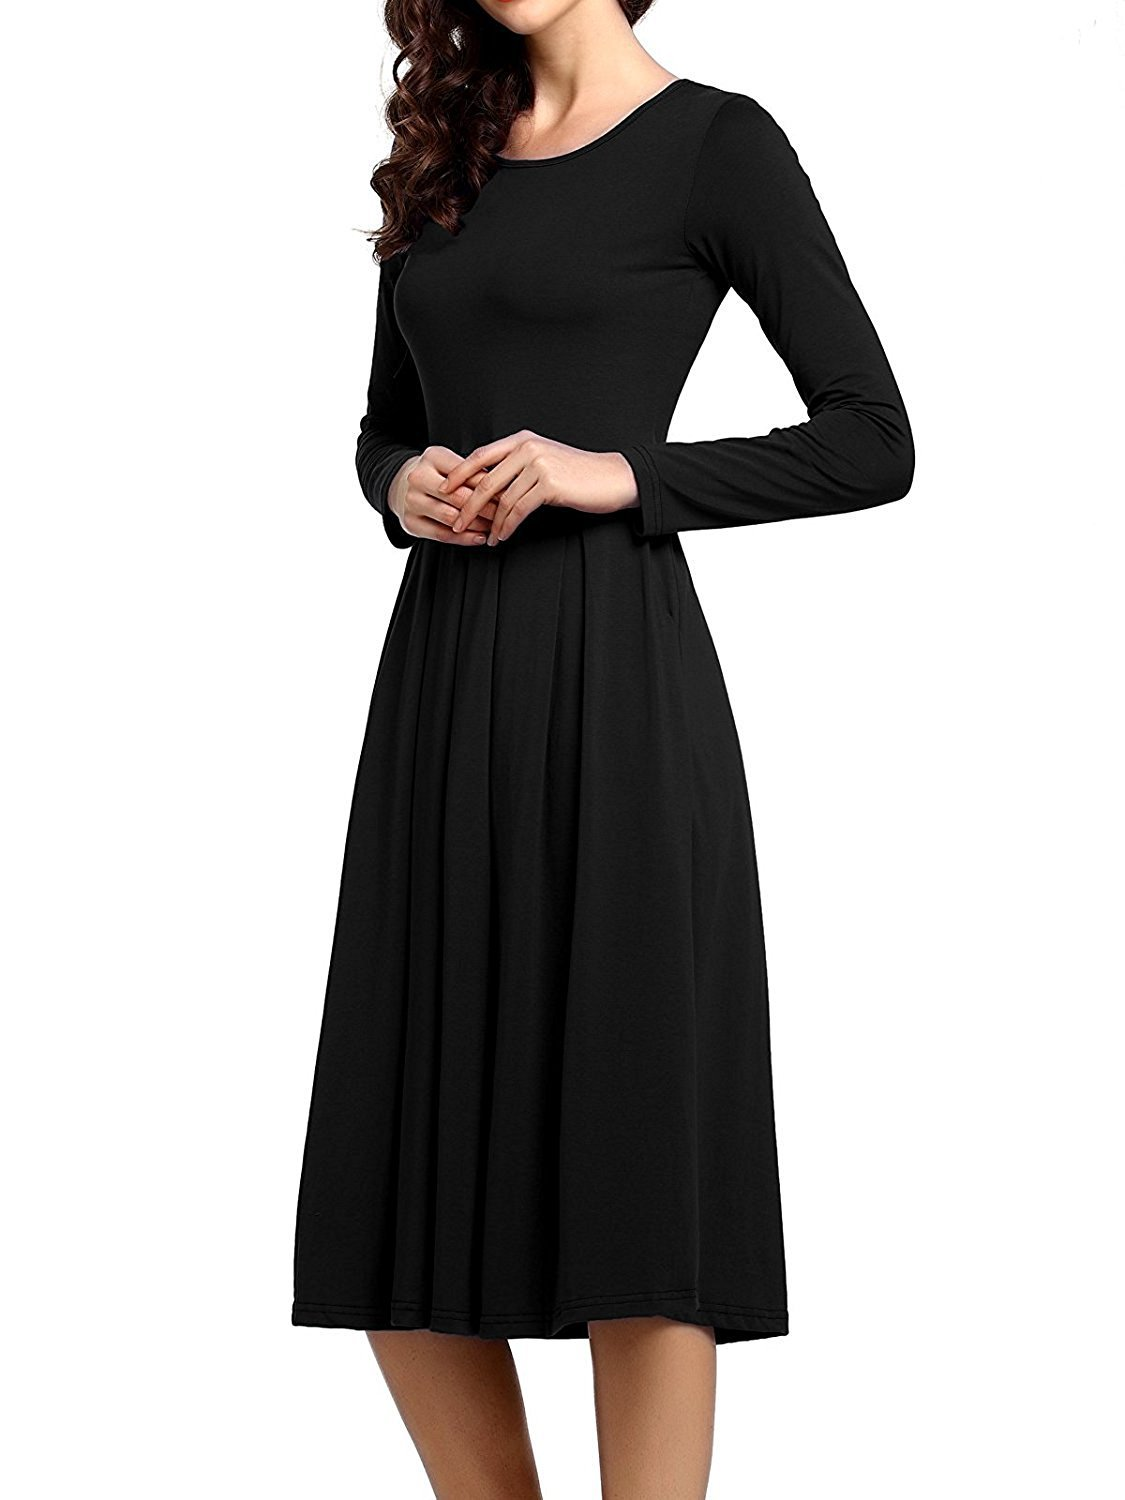 Beluring Womens Plain Scoop Neck Pockets Pleated Loose Swing Casual Midi Dress